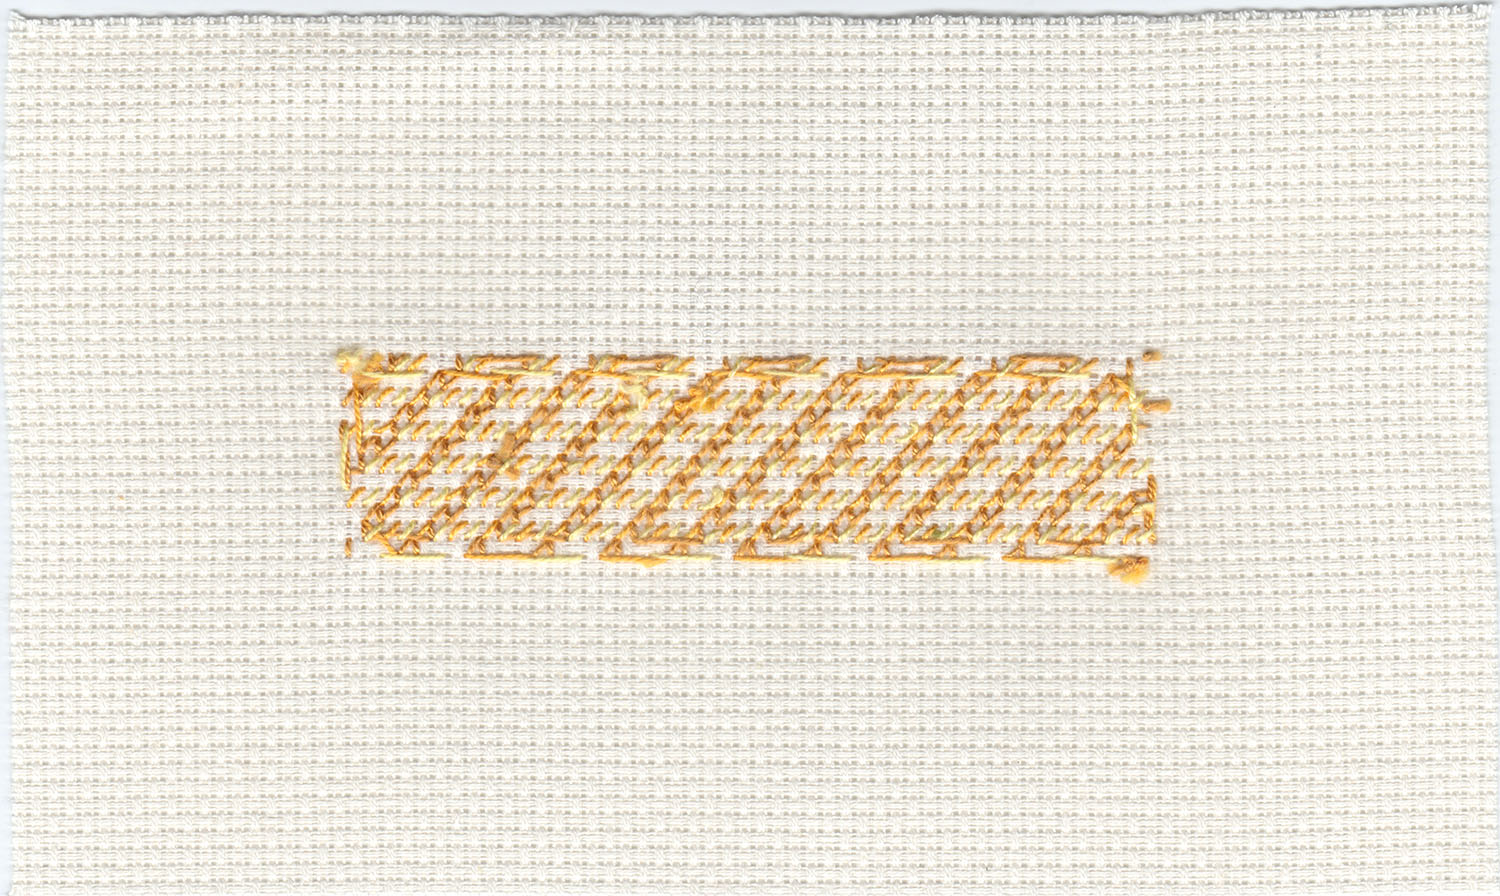 Colour Study in 576 Diagonal Stitches_10B_web.jpg